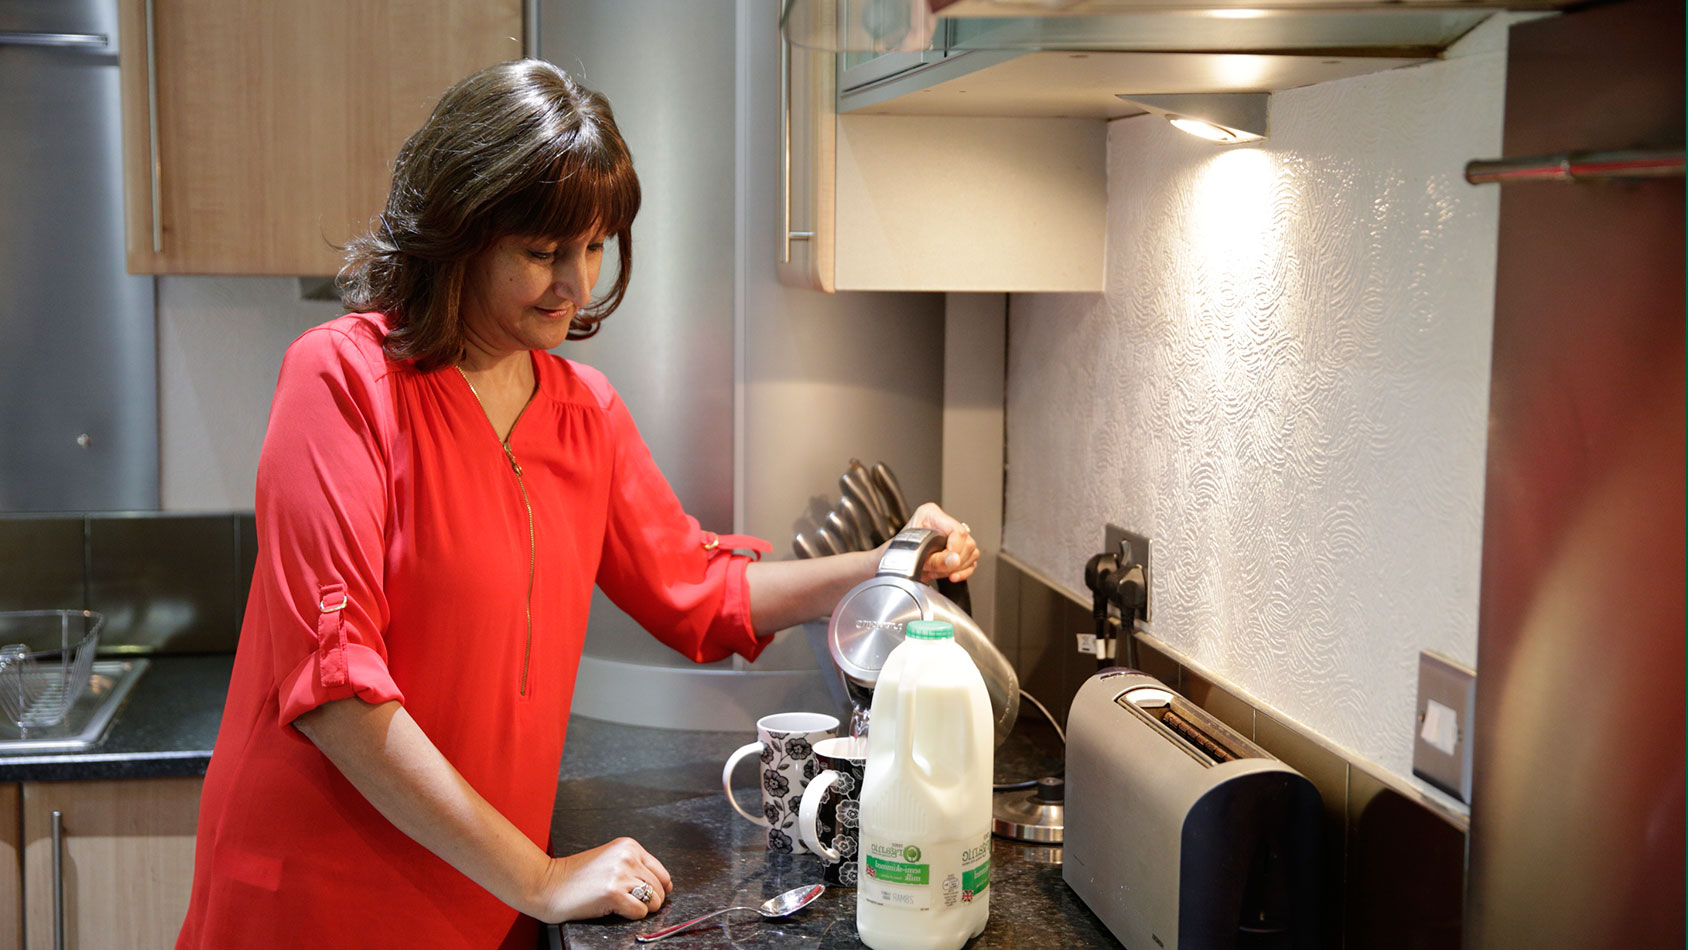 Ravinder makes a cup of tea in her kitchen.